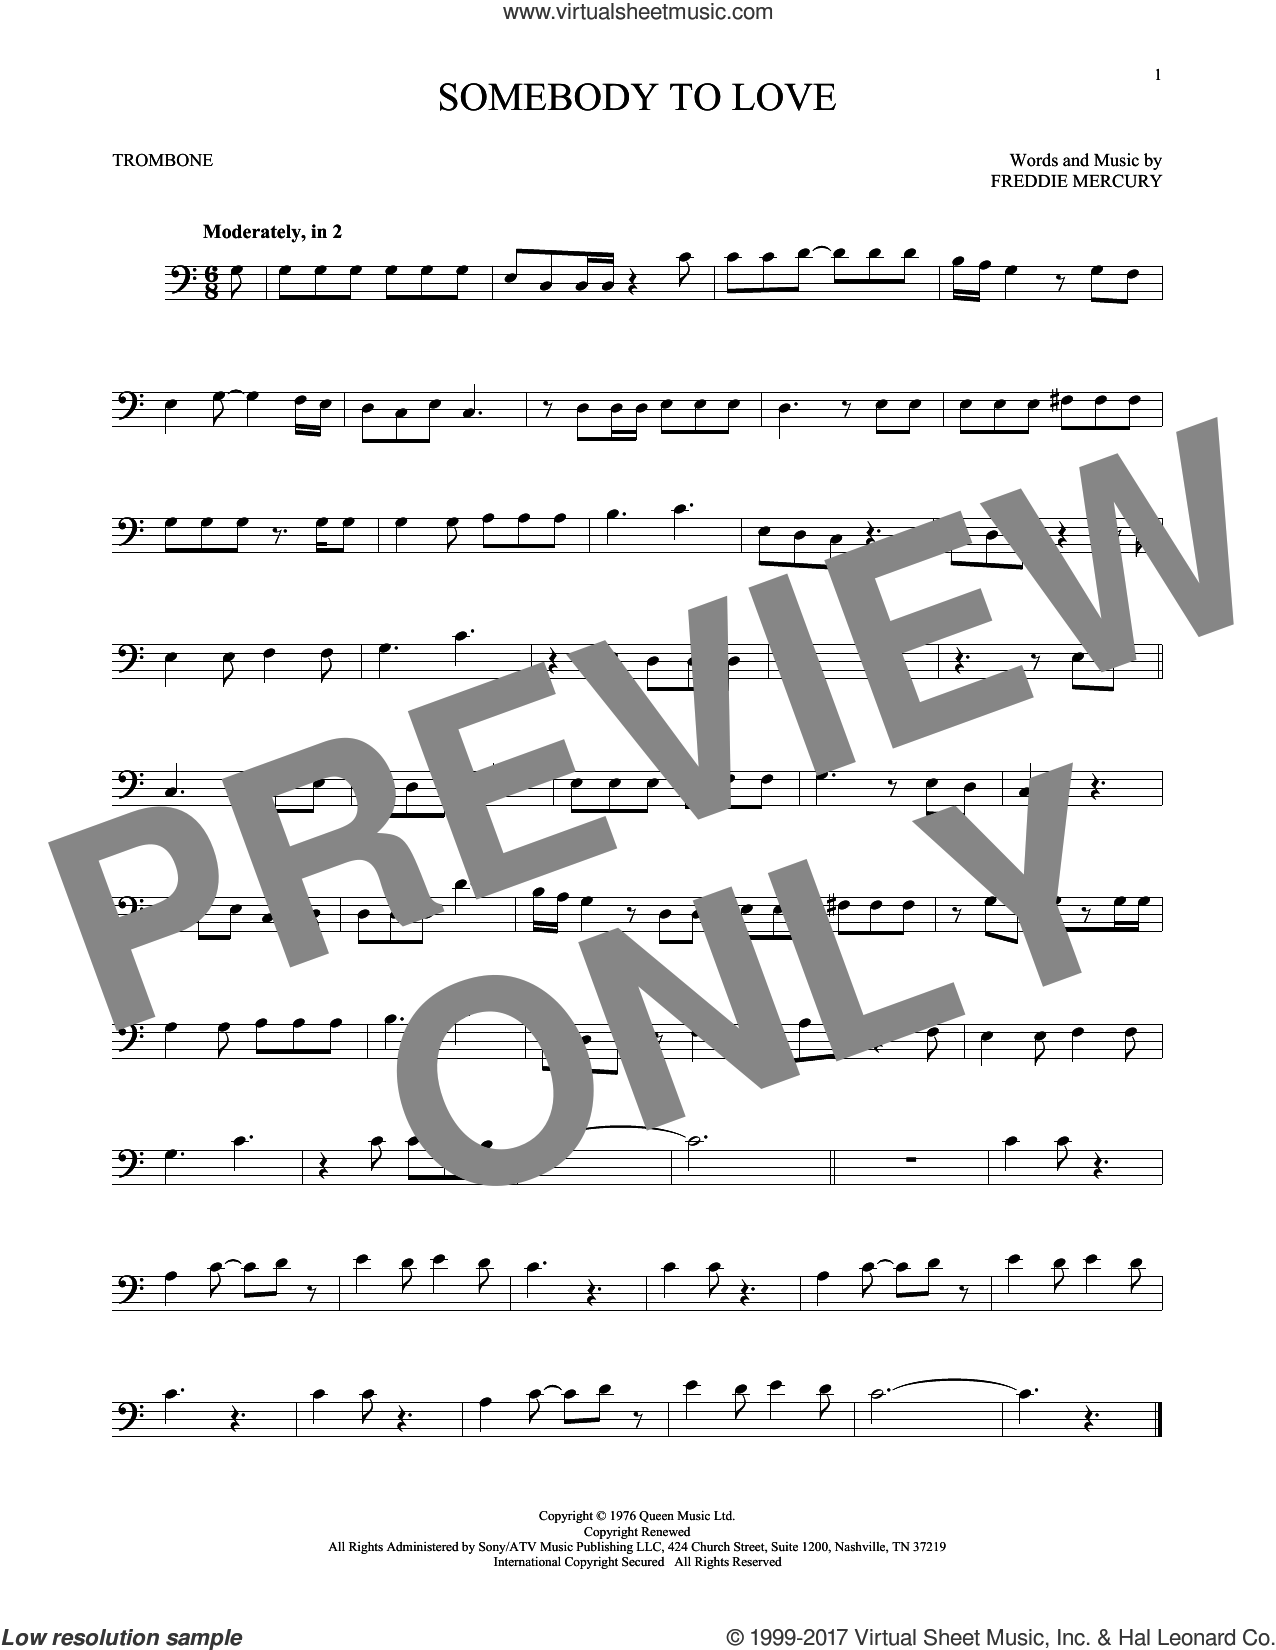 Somebody To Love sheet music for trombone solo by Queen and Freddie Mercury, intermediate